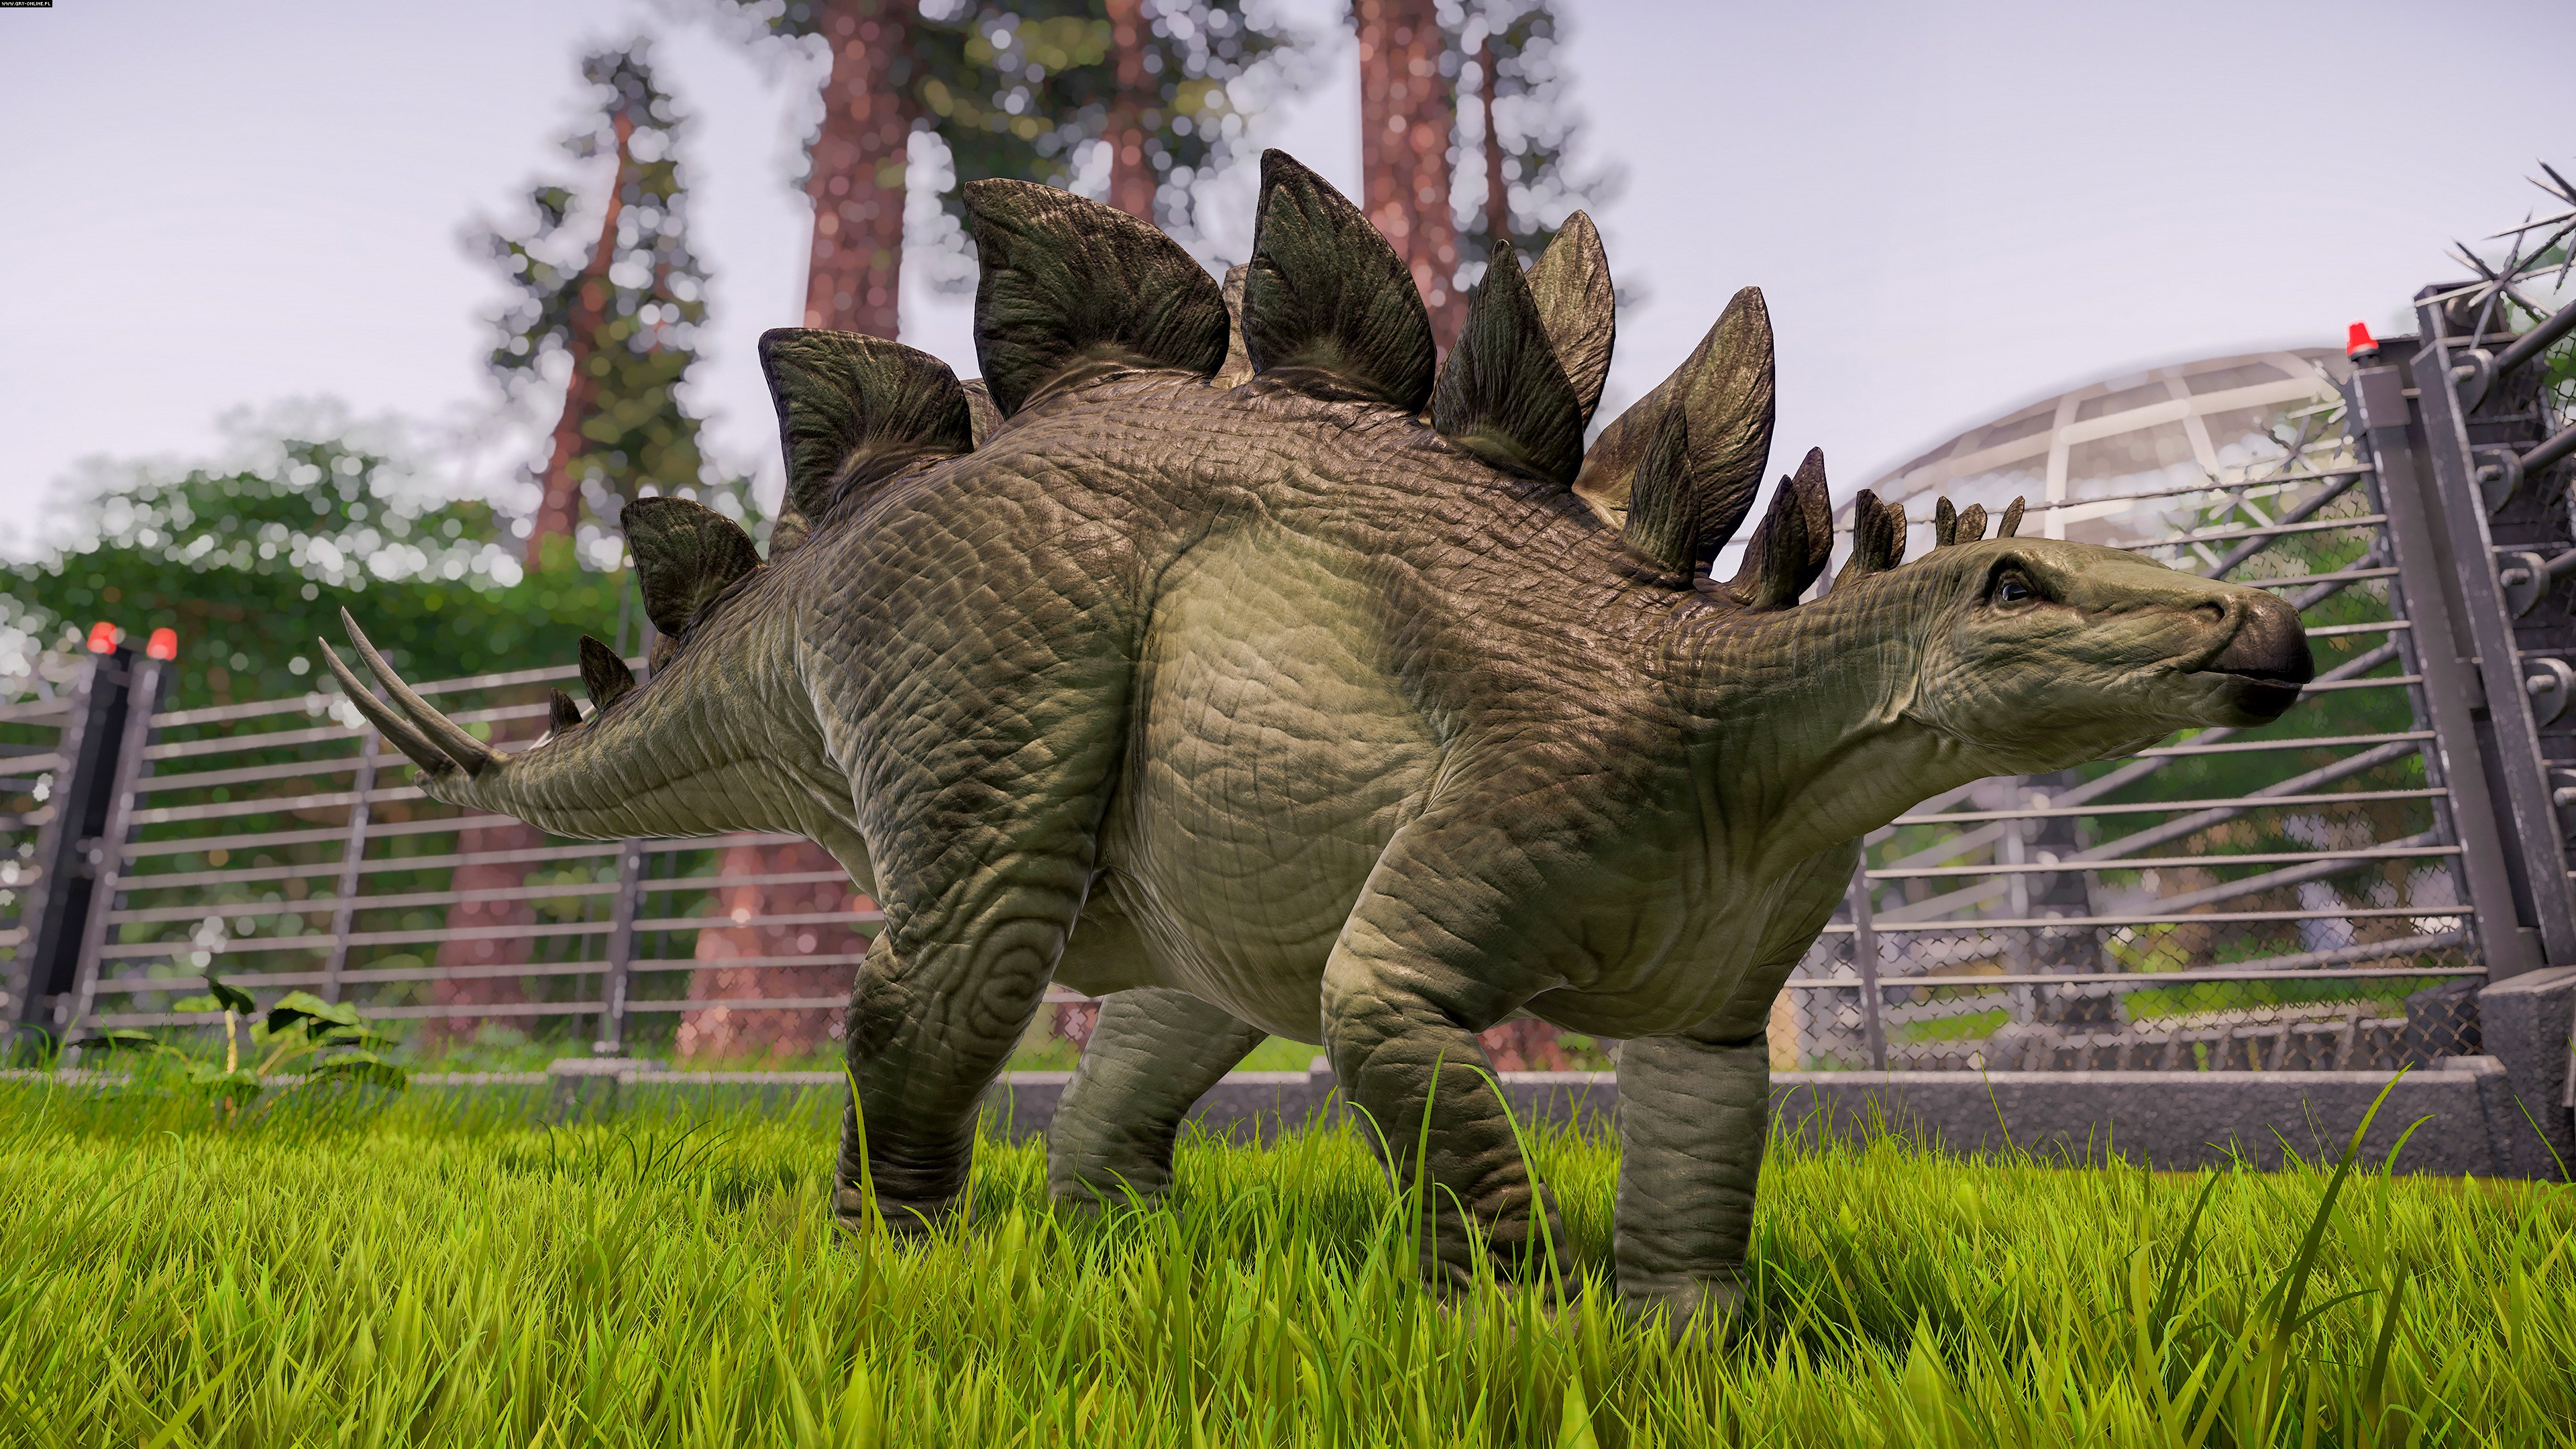 Jurassic World Evolution PC, PS4, XONE Gry Screen 7/60, Frontier Developments